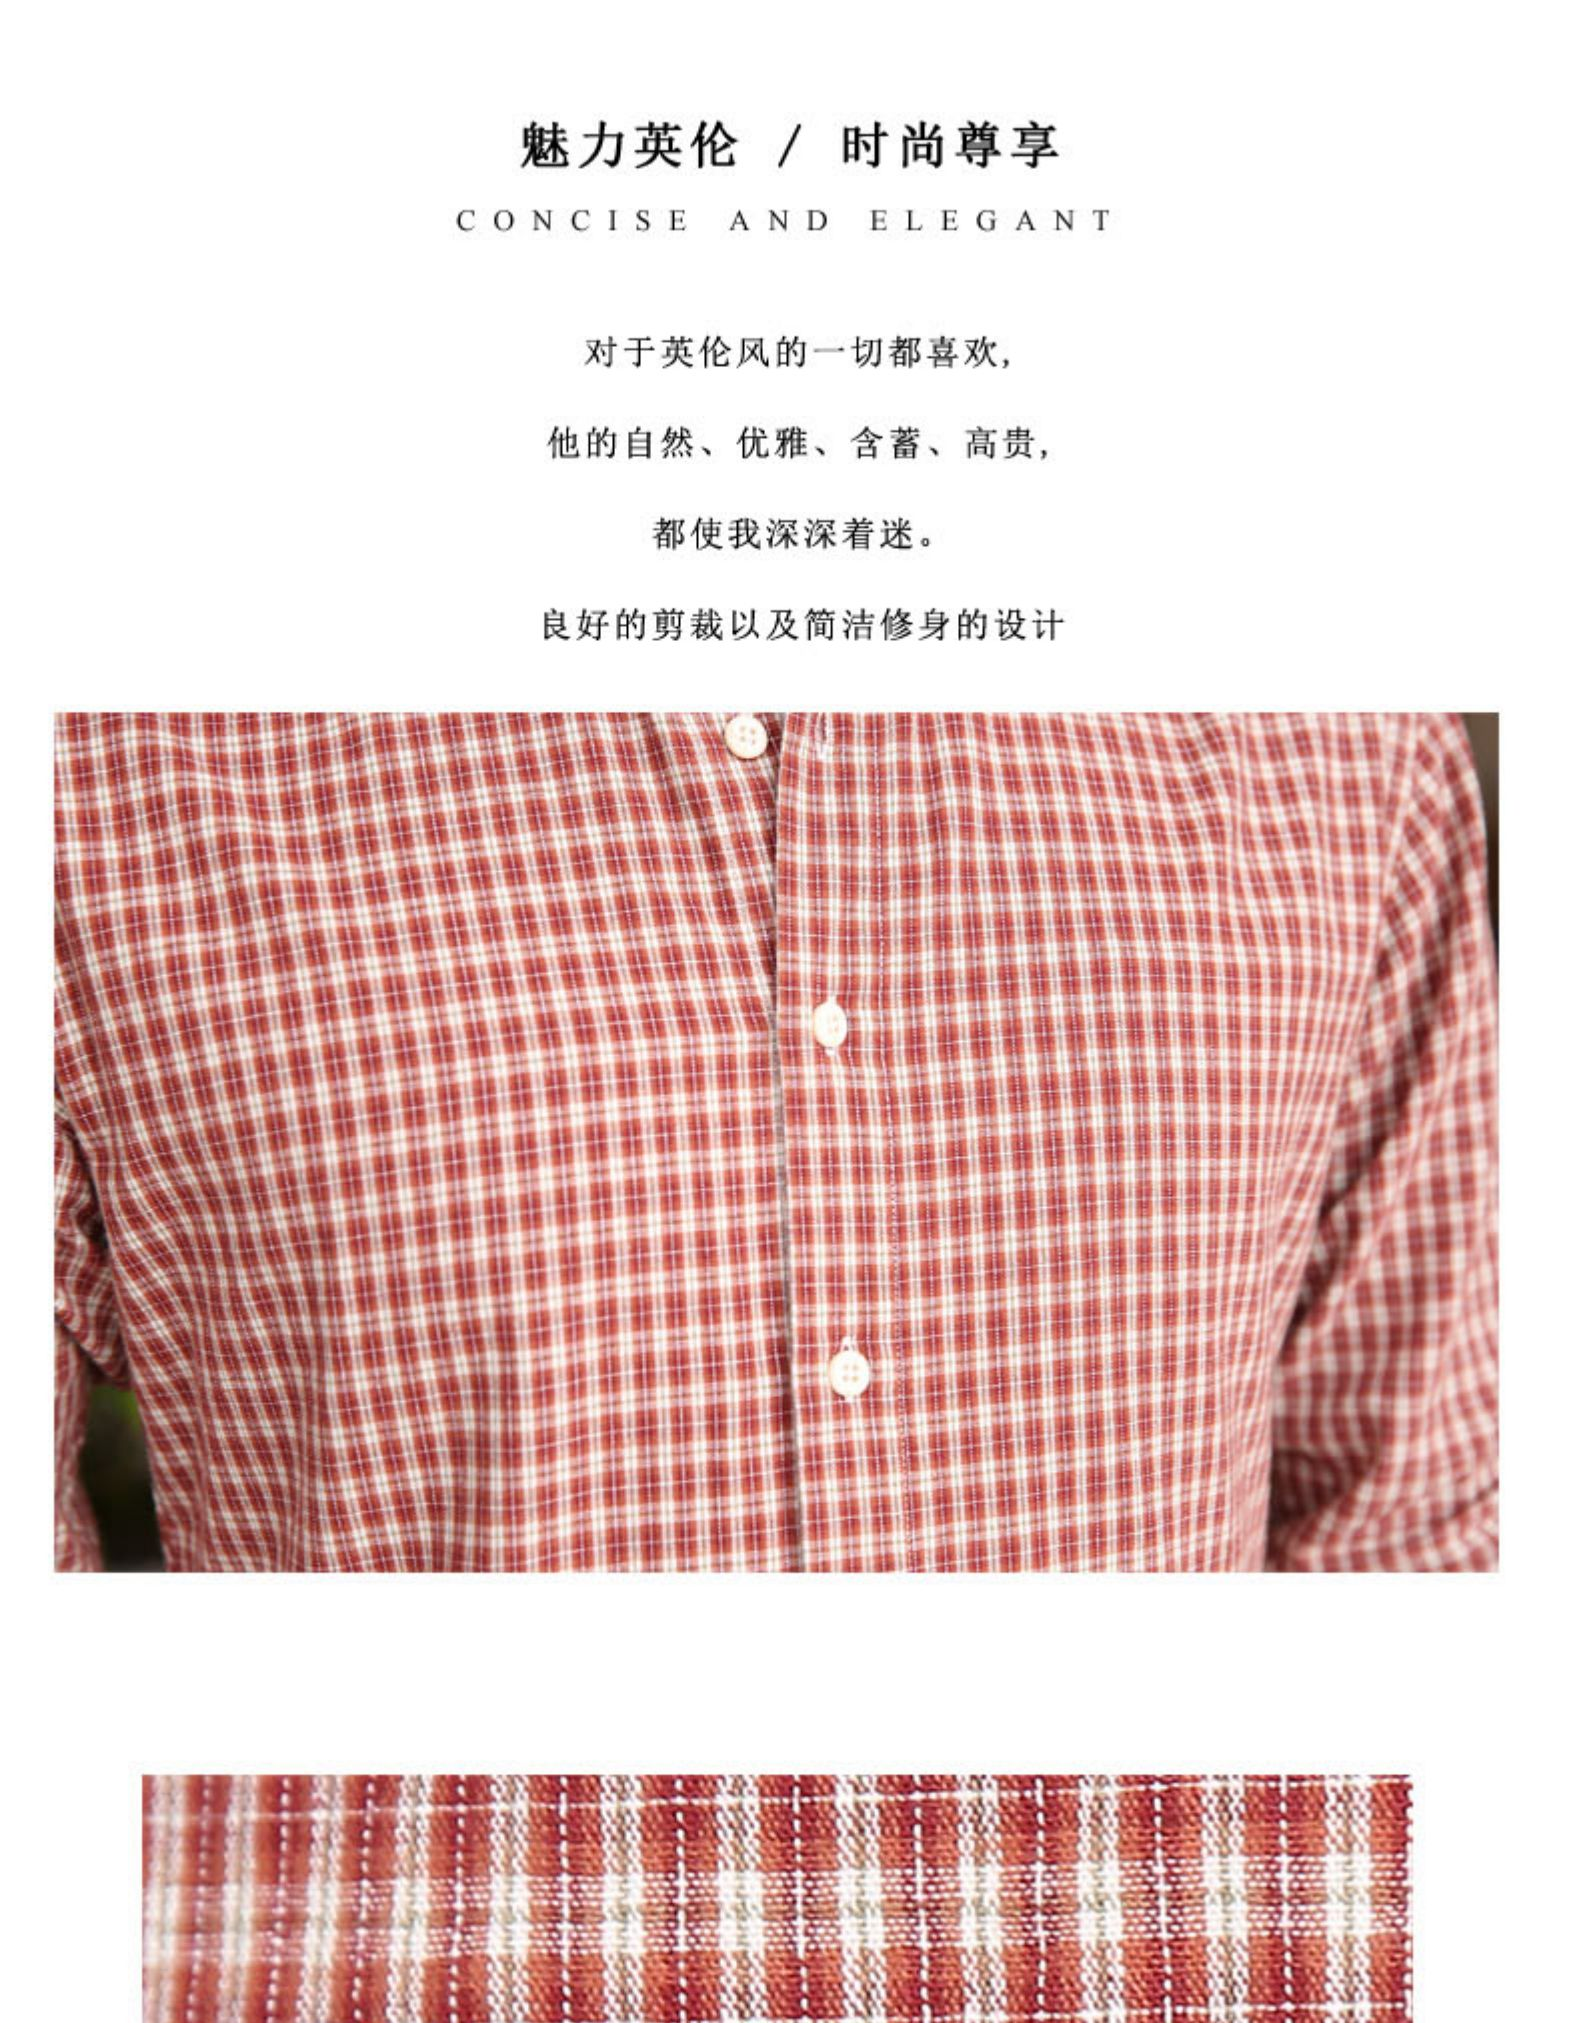 Pure cotton small plaid shirt men's long-sleeved Korean version of the tide brand casual inch clothes spring men's slim handsome shirt jacket 48 Online shopping Bangladesh